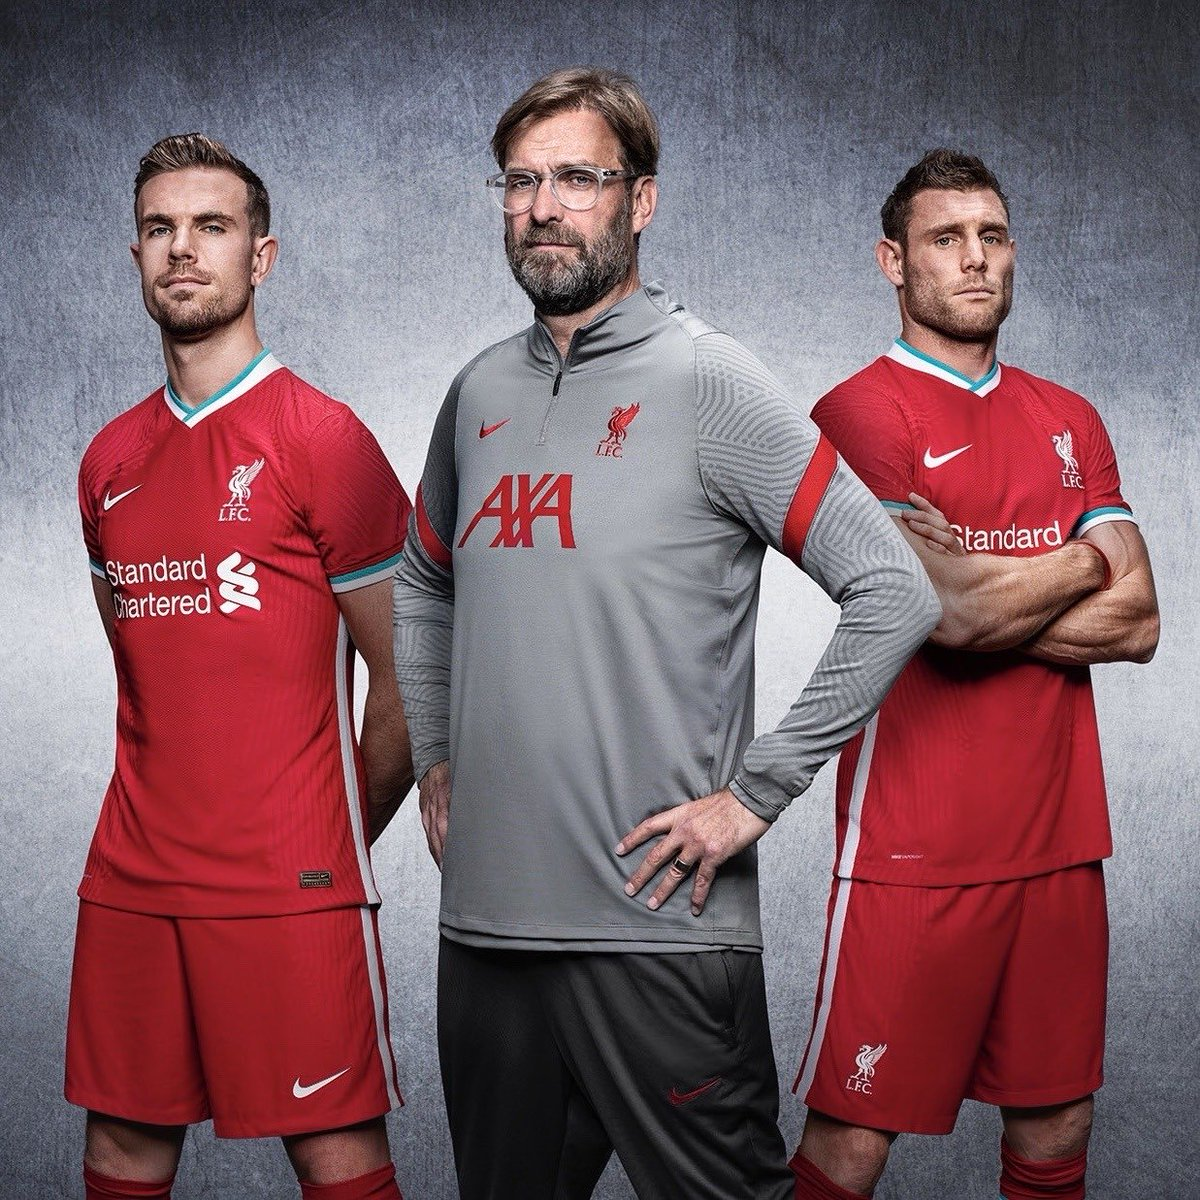 If you needed something to brighten up your Monday. ⬇️⬇️⬇️  #LFC | #Liverpool https://t.co/ITVH5CQbJW